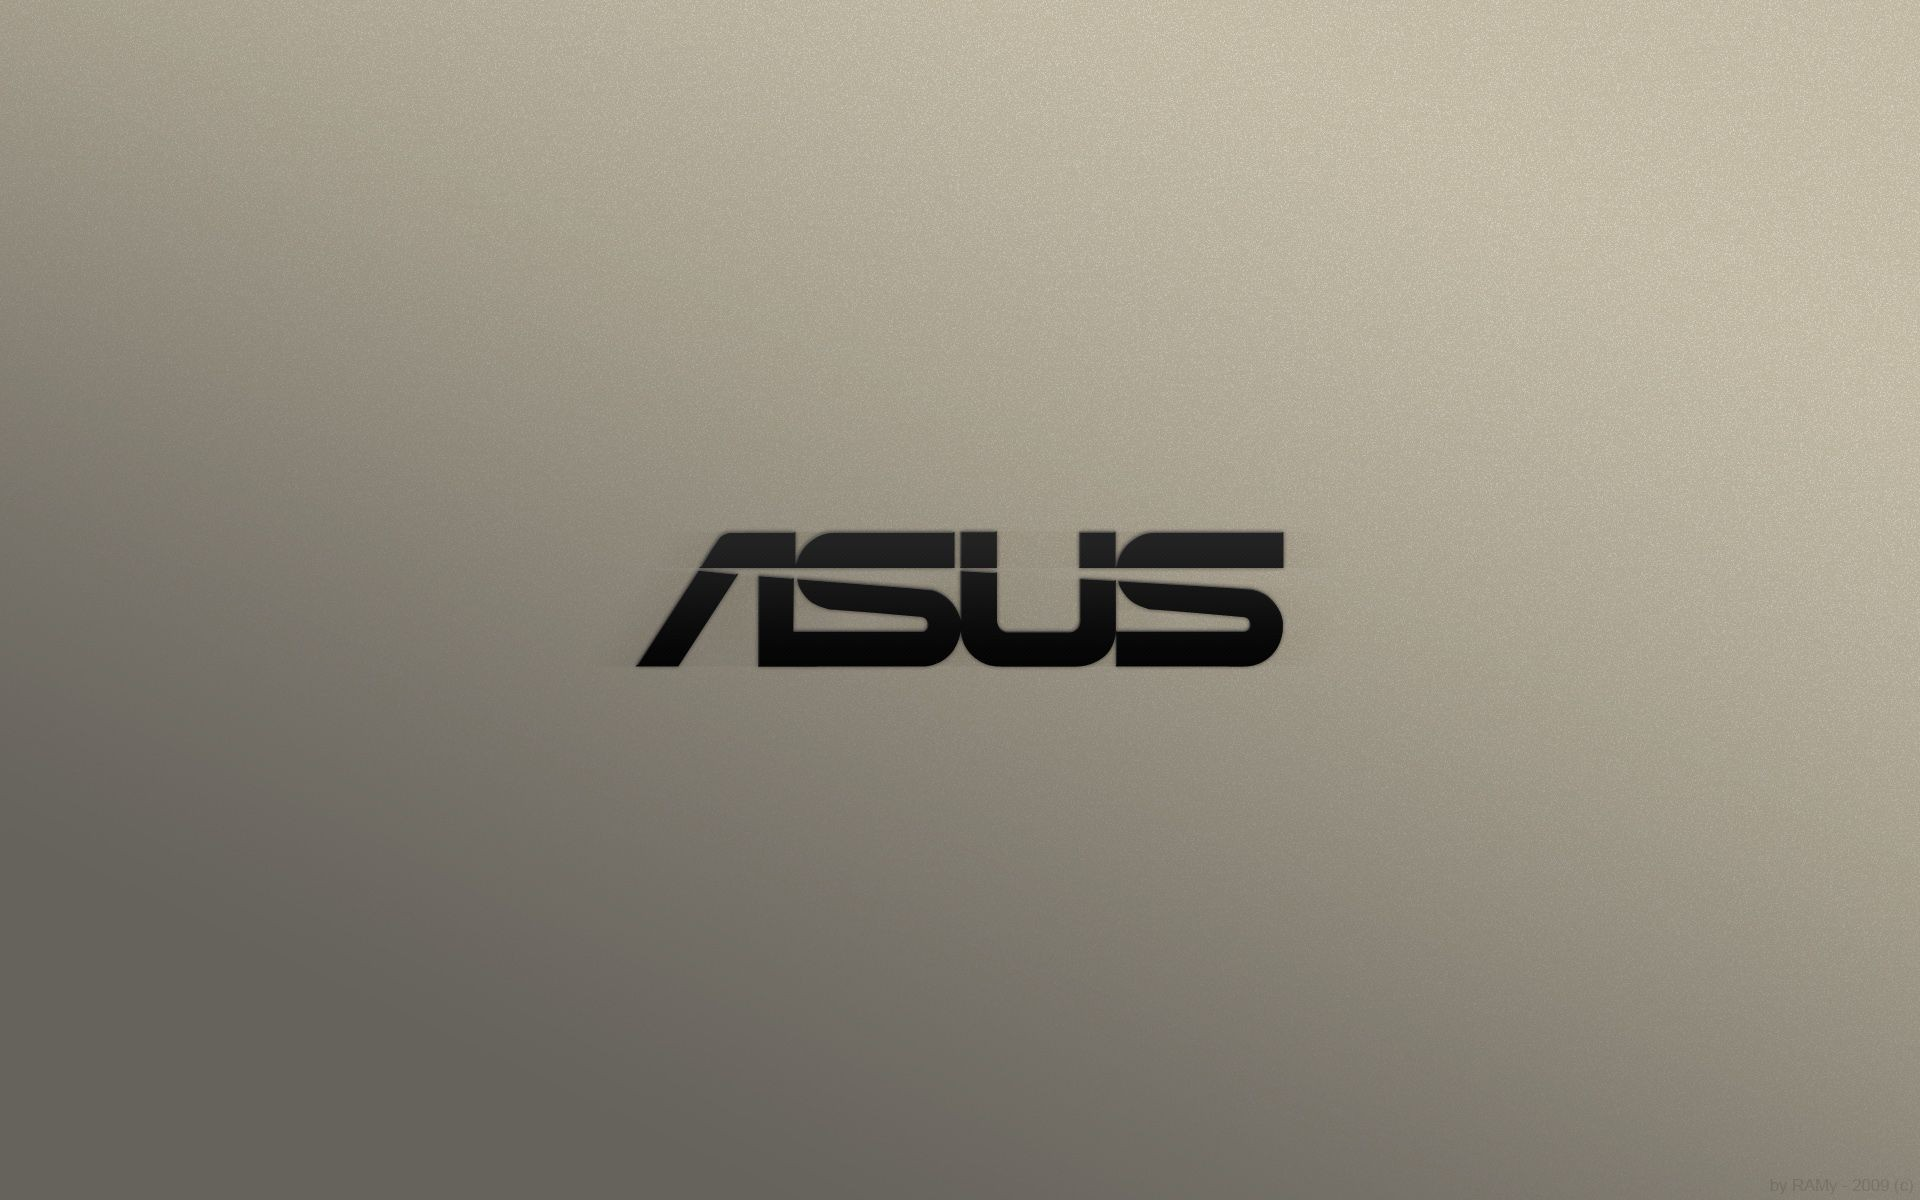 asus wallpaper ·① download free awesome backgrounds for desktop